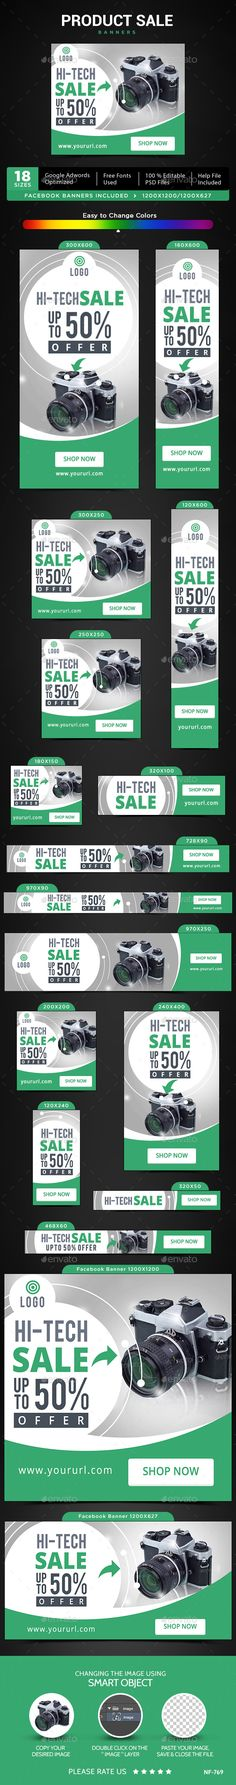 Product Sale Web Banners Template PSD #ads #design Download: http://graphicriver.net/item/product-sale-banners/13420319?ref=ksioks